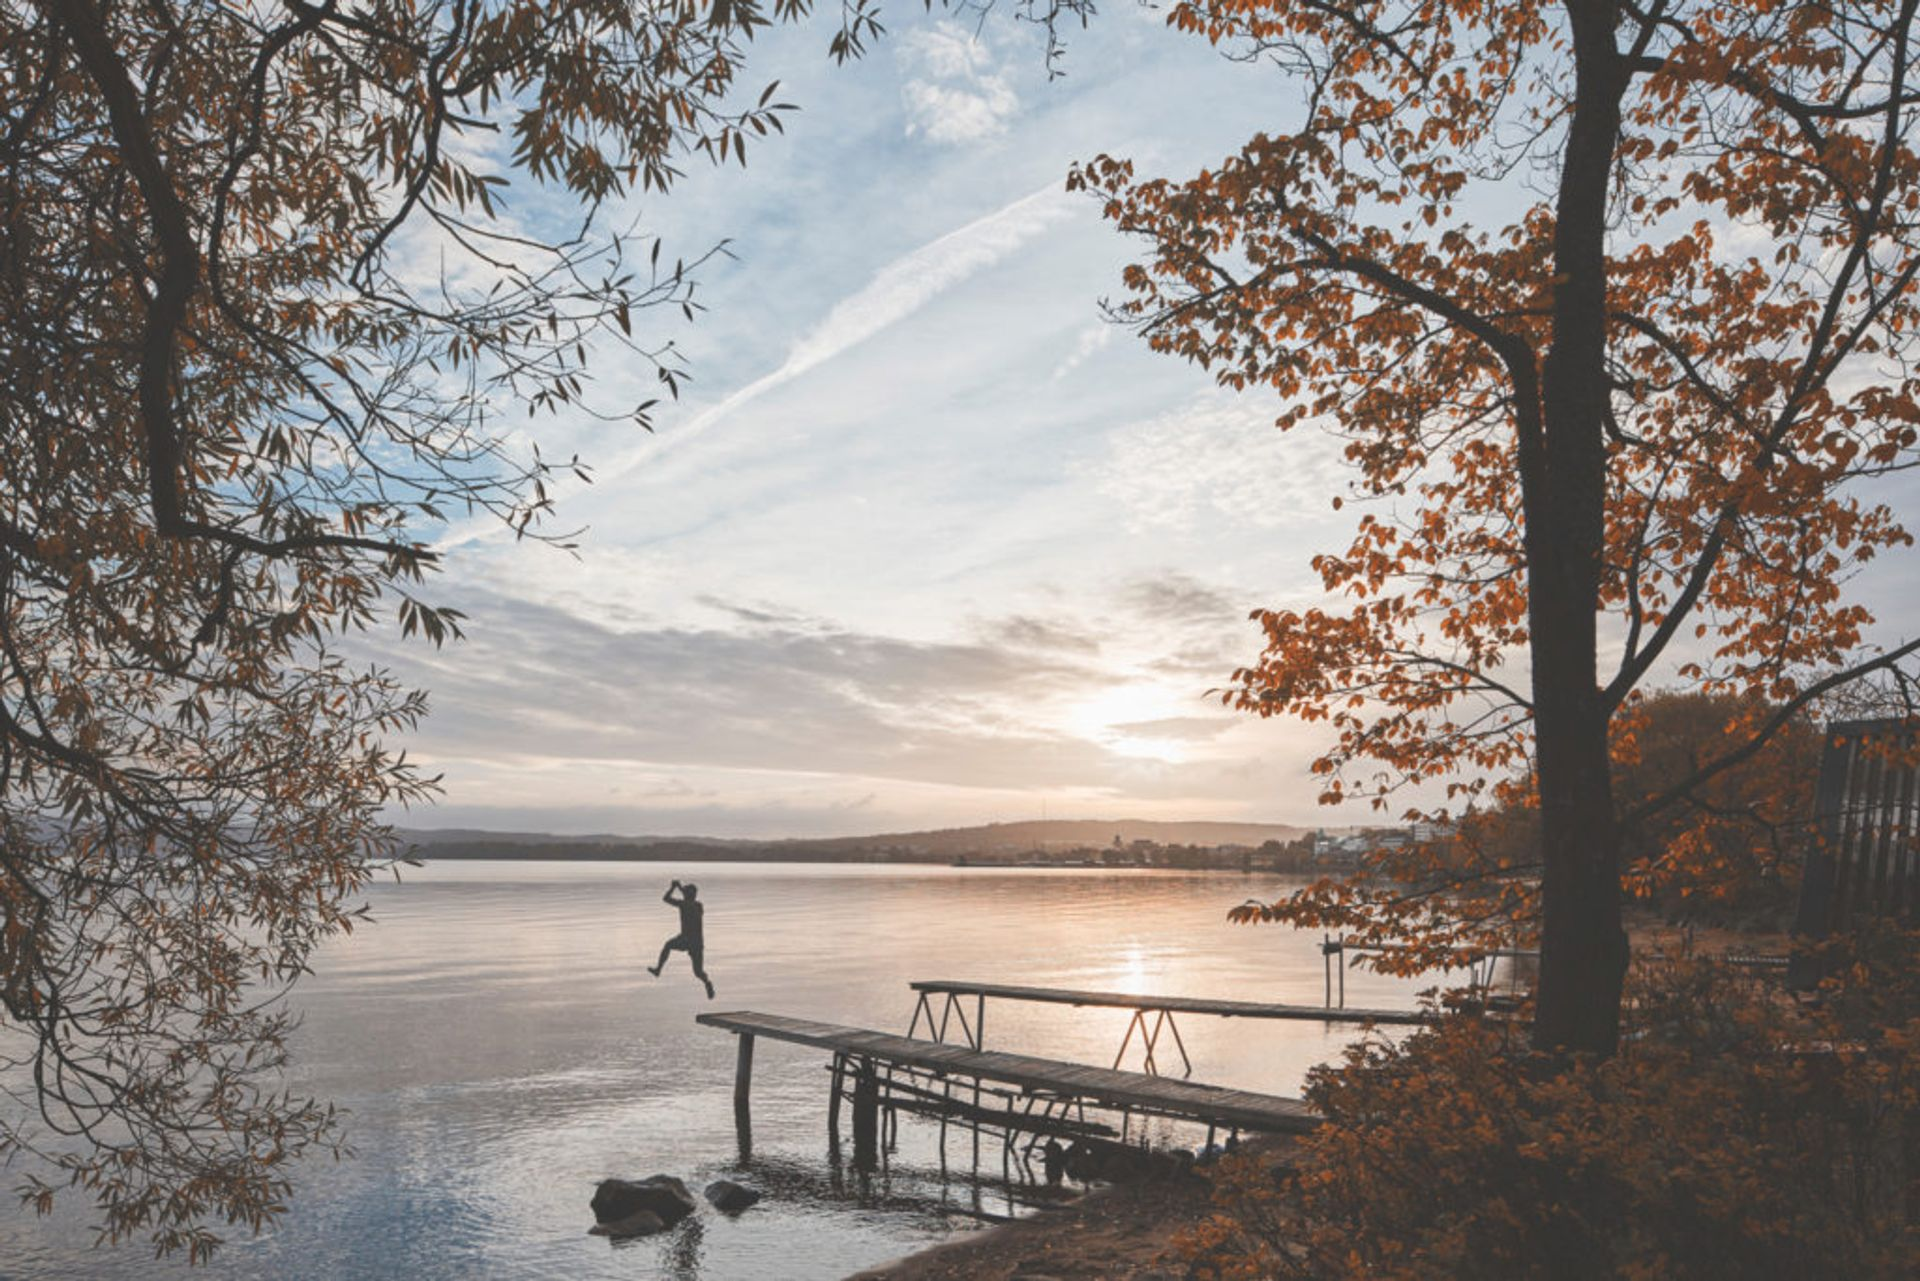 Person jumping off a wooden jetty into a lake.